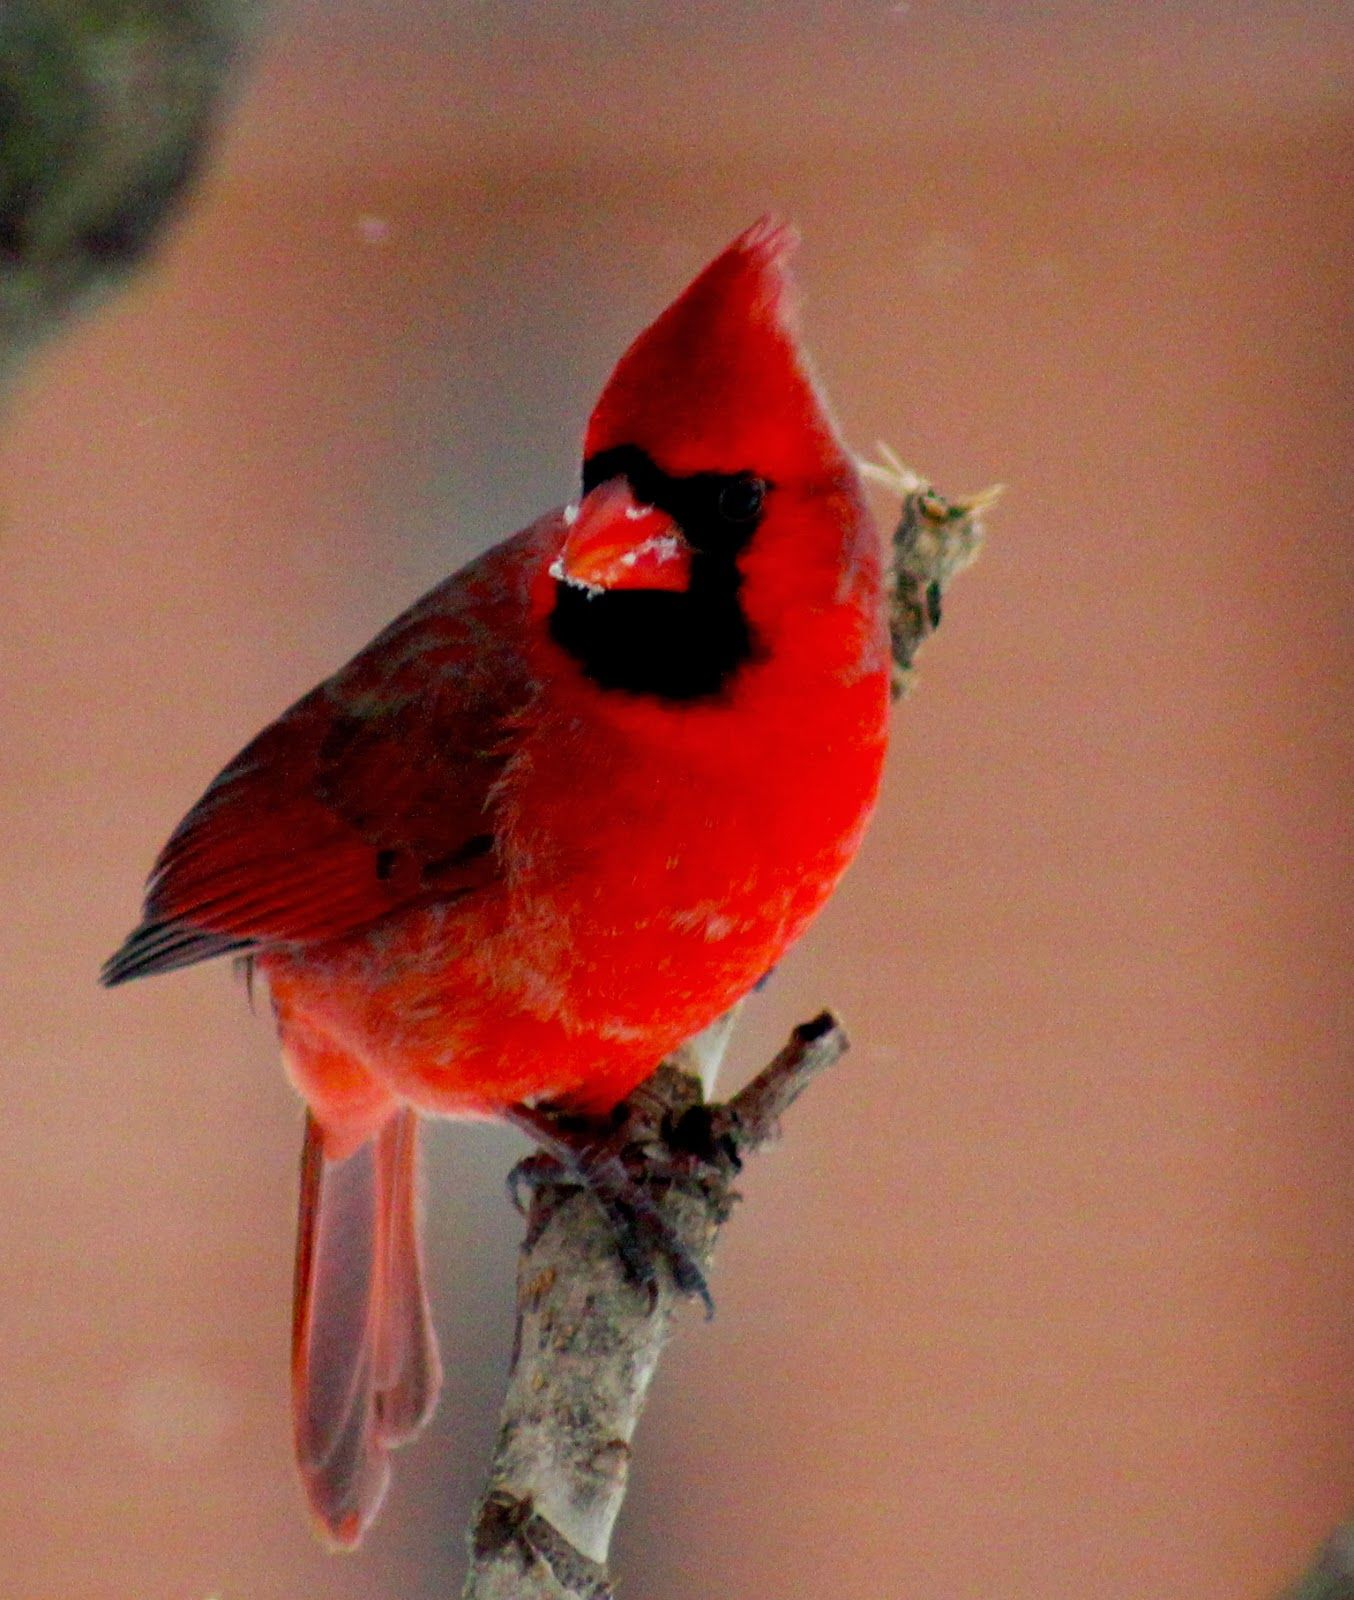 New House: Don't Forget The Birds - Tips for Winter Feeding